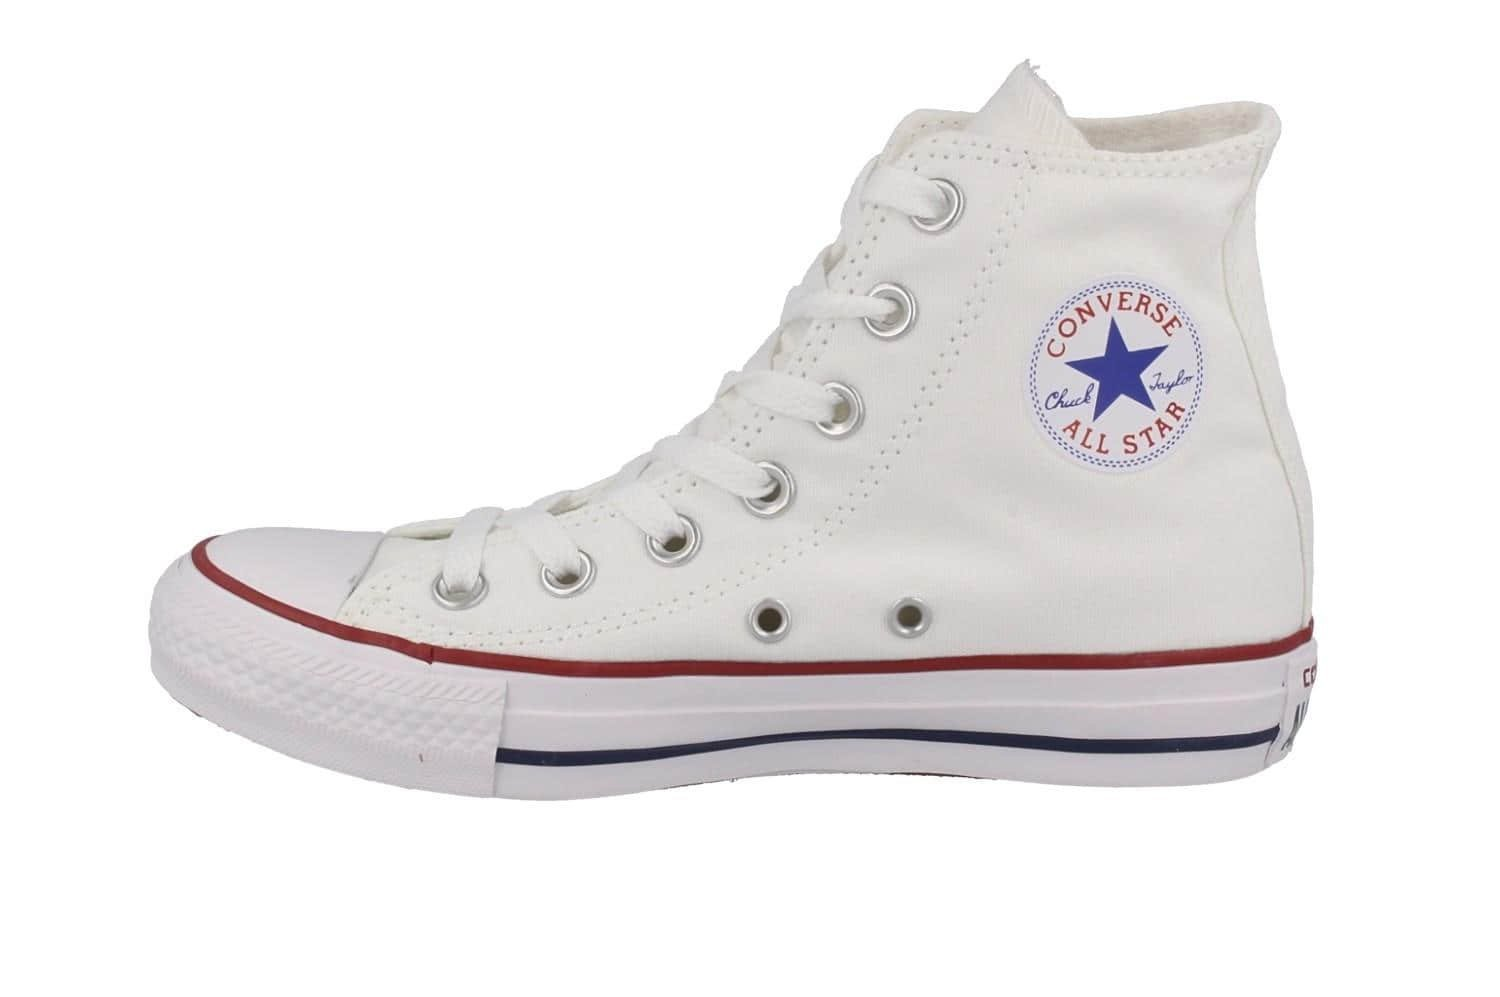 Converse Unisex Chuck Taylor All Star Hi Oxfords Optical White 6.5 D(M) US by Converse (Image #9)